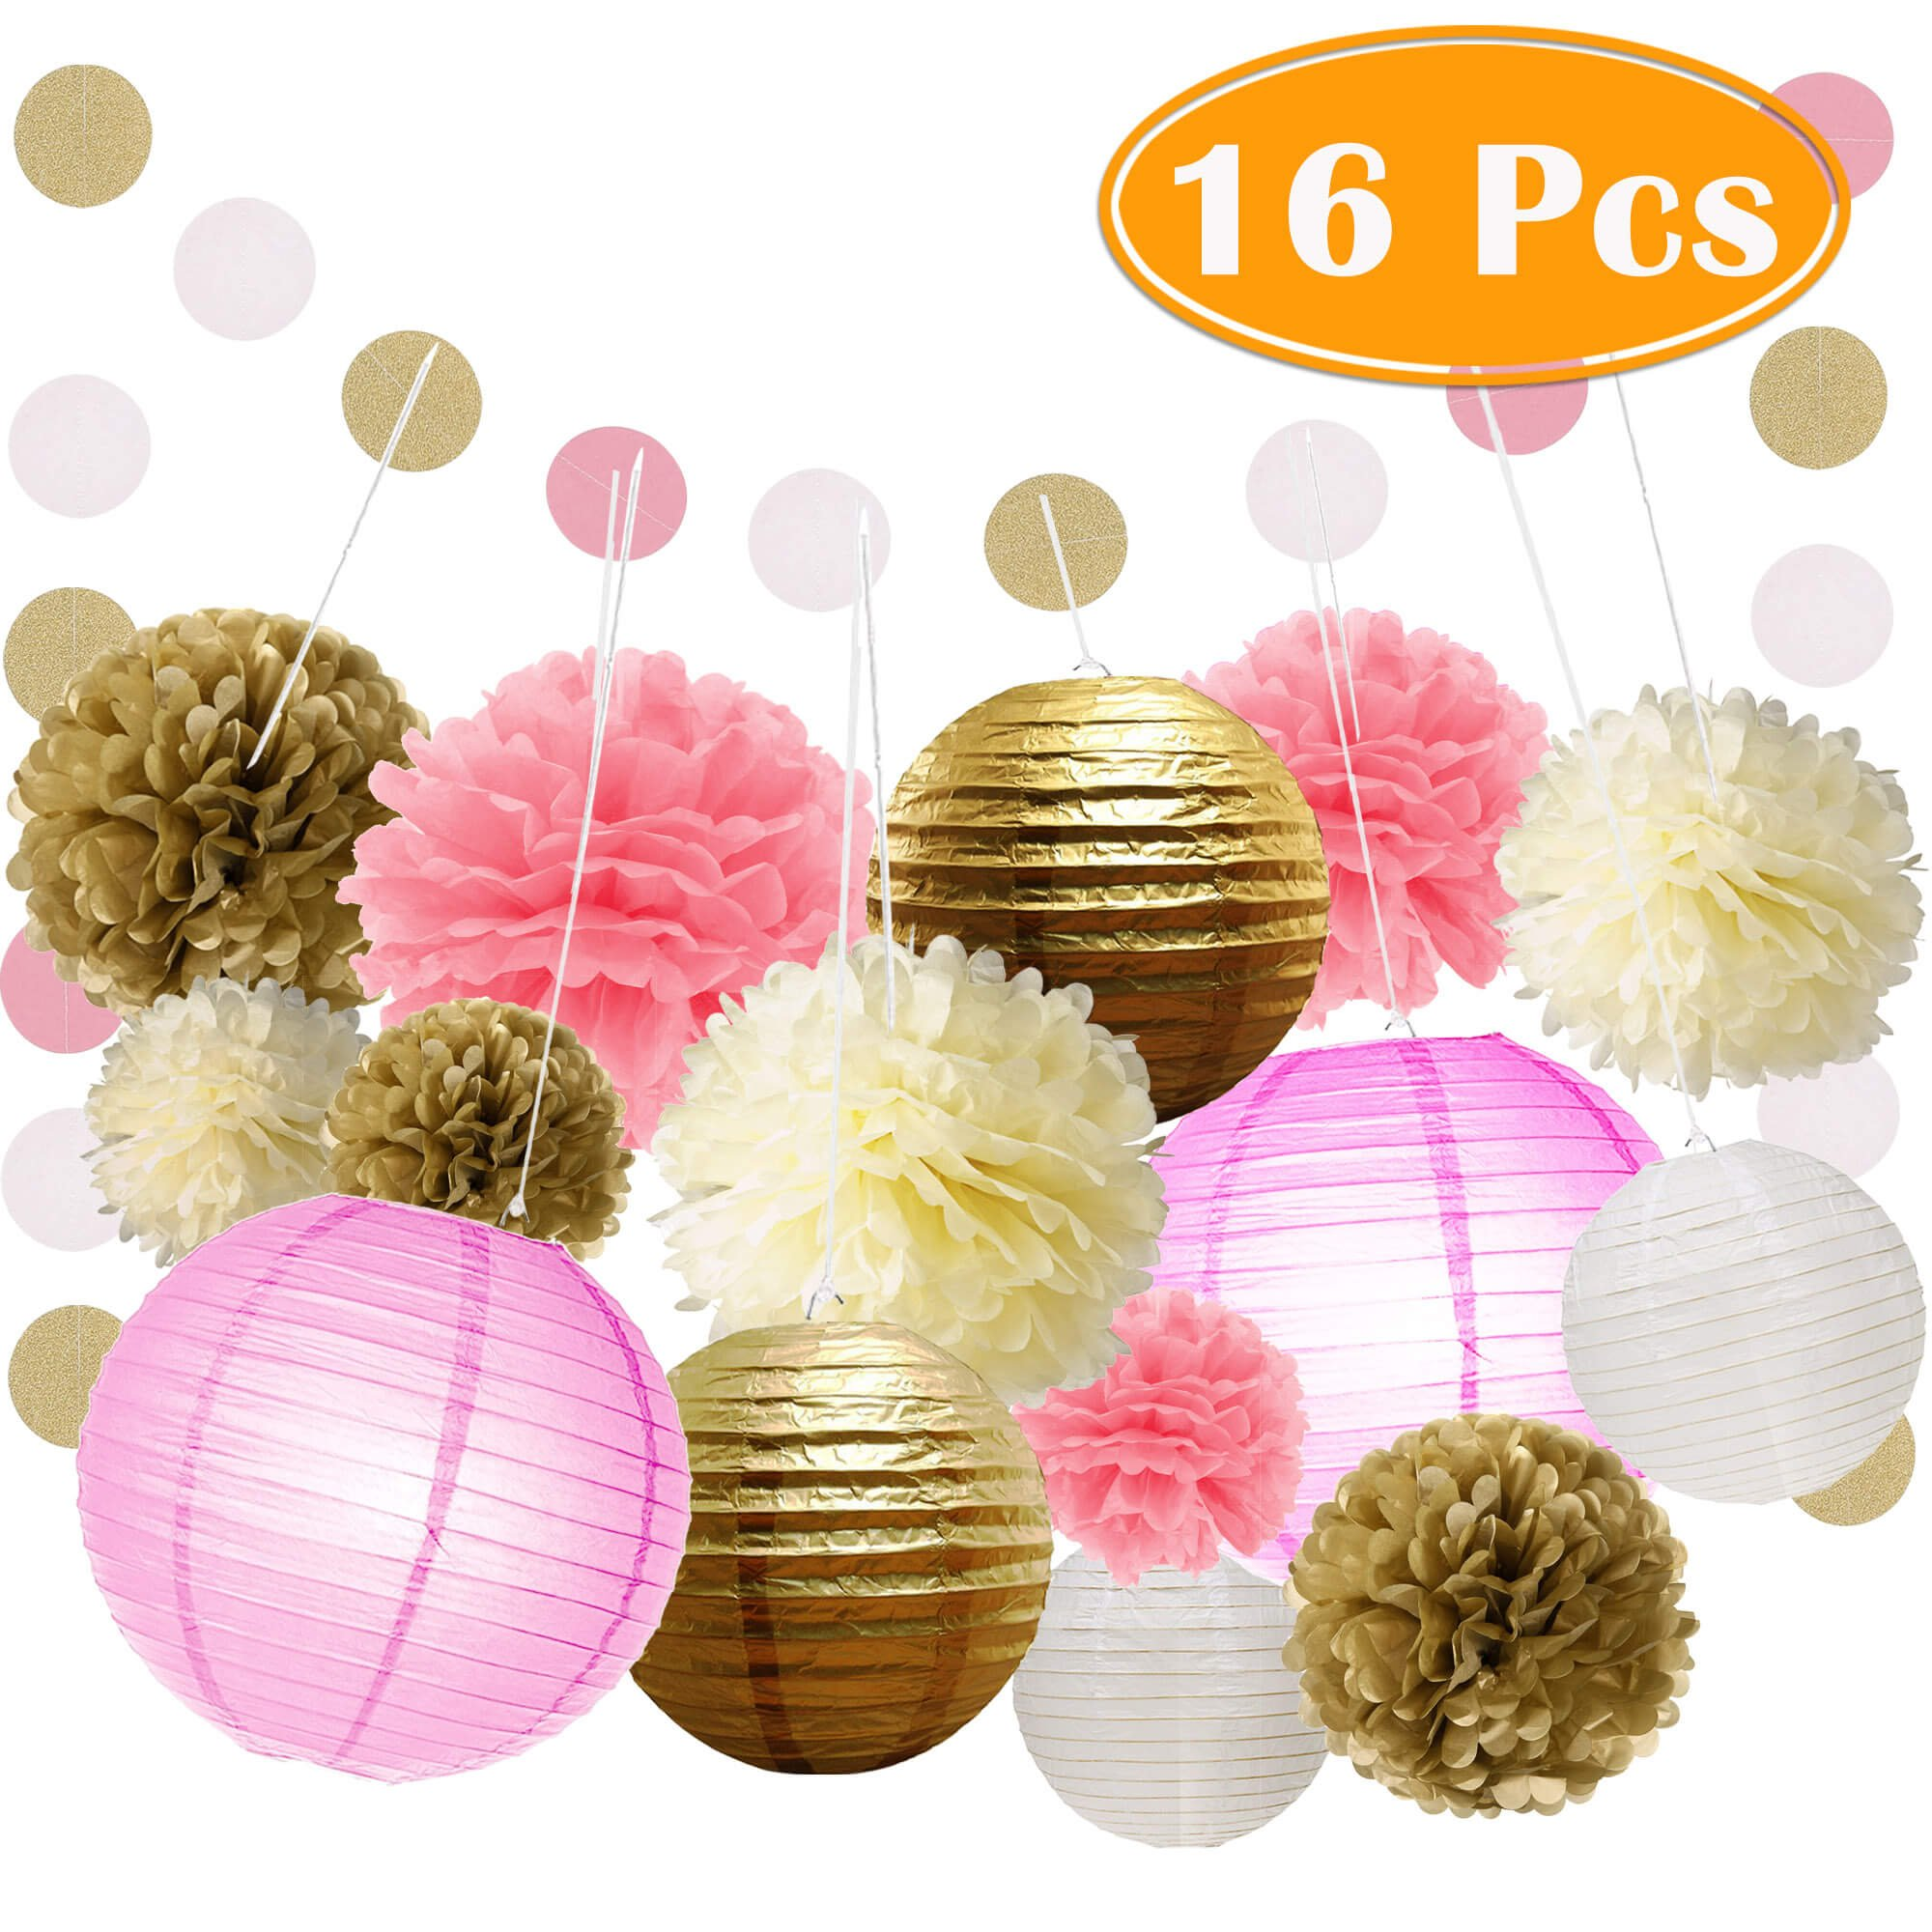 Paxcoo 16 Pcs Pink and Gold Party Supplies with Paper Lanterns and Tissue Pom Poms for 1st Baby Girl Birthday Decorations by PAXCOO